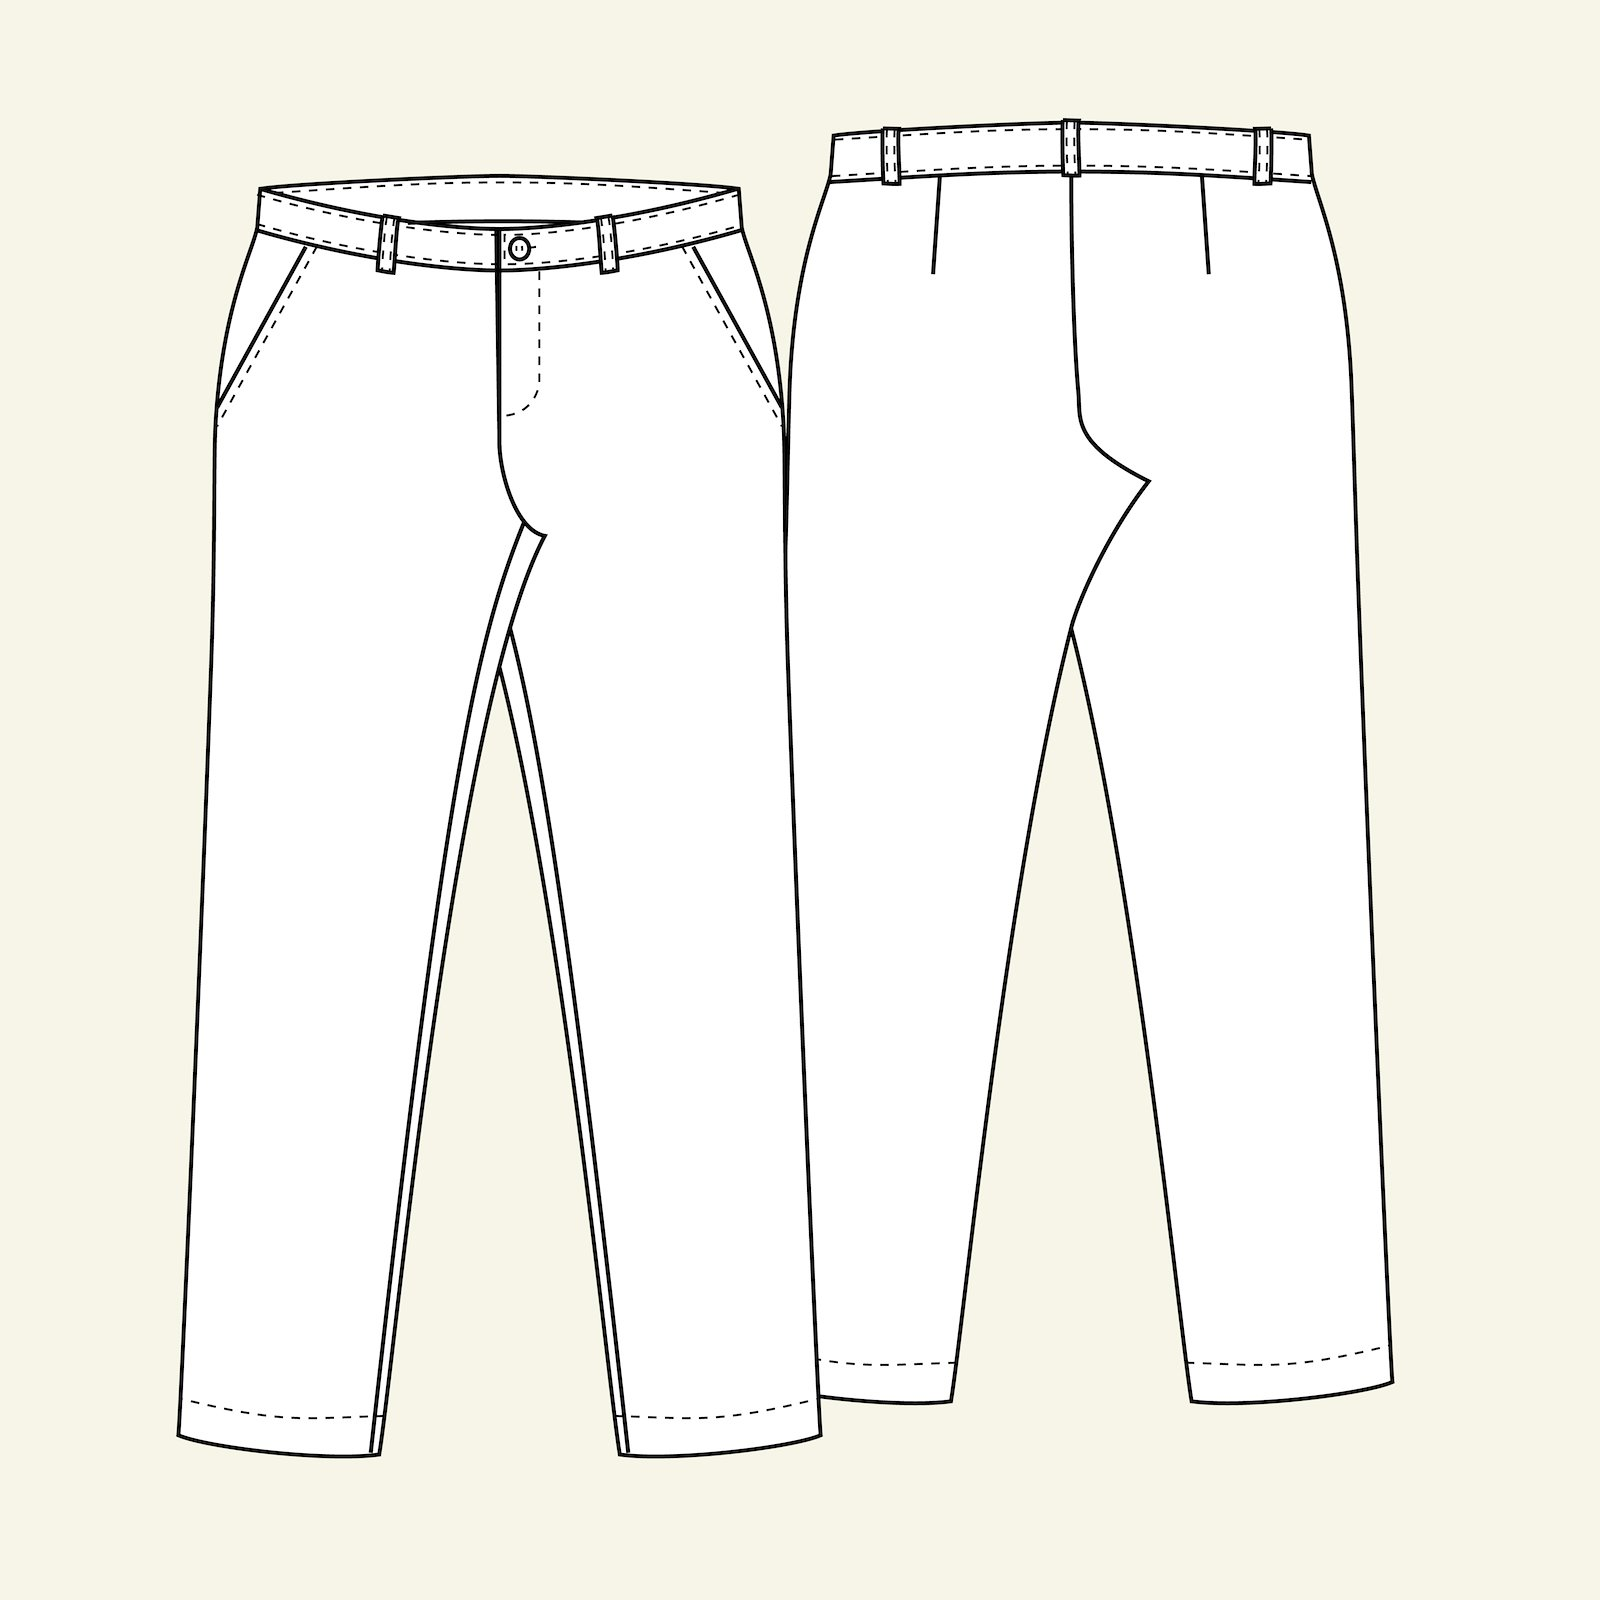 Trousers, 38/10 p20033_pack